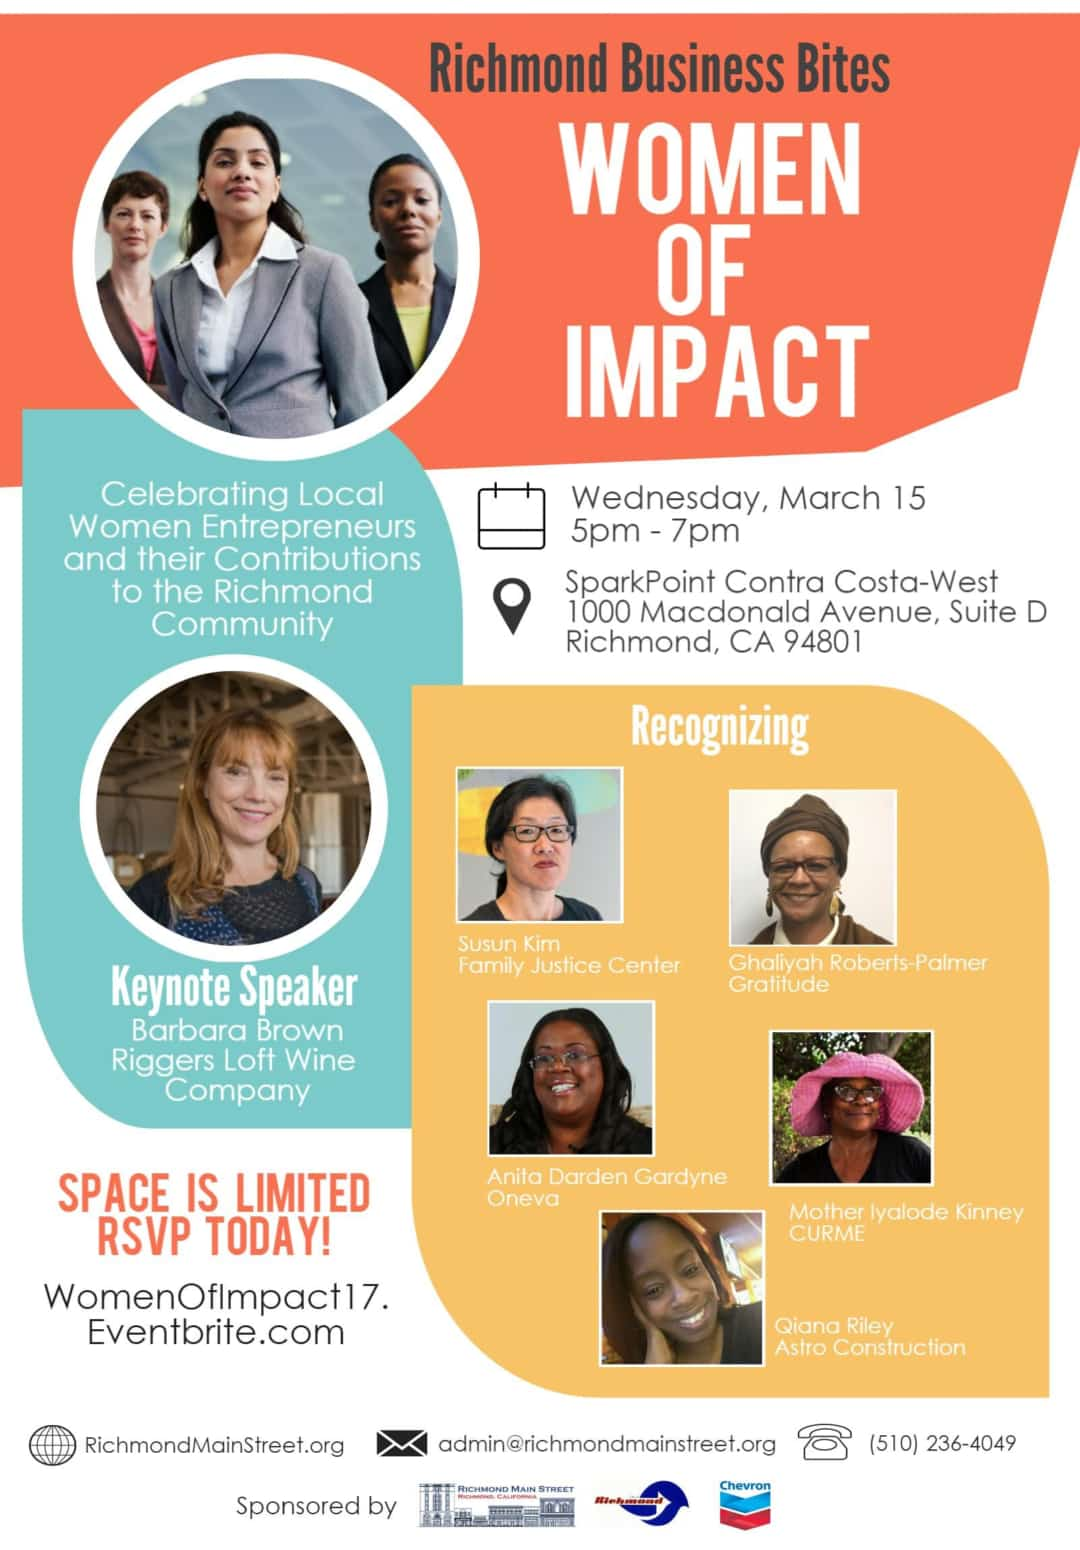 Sold Out Event to Celebrate Local Women of Impact